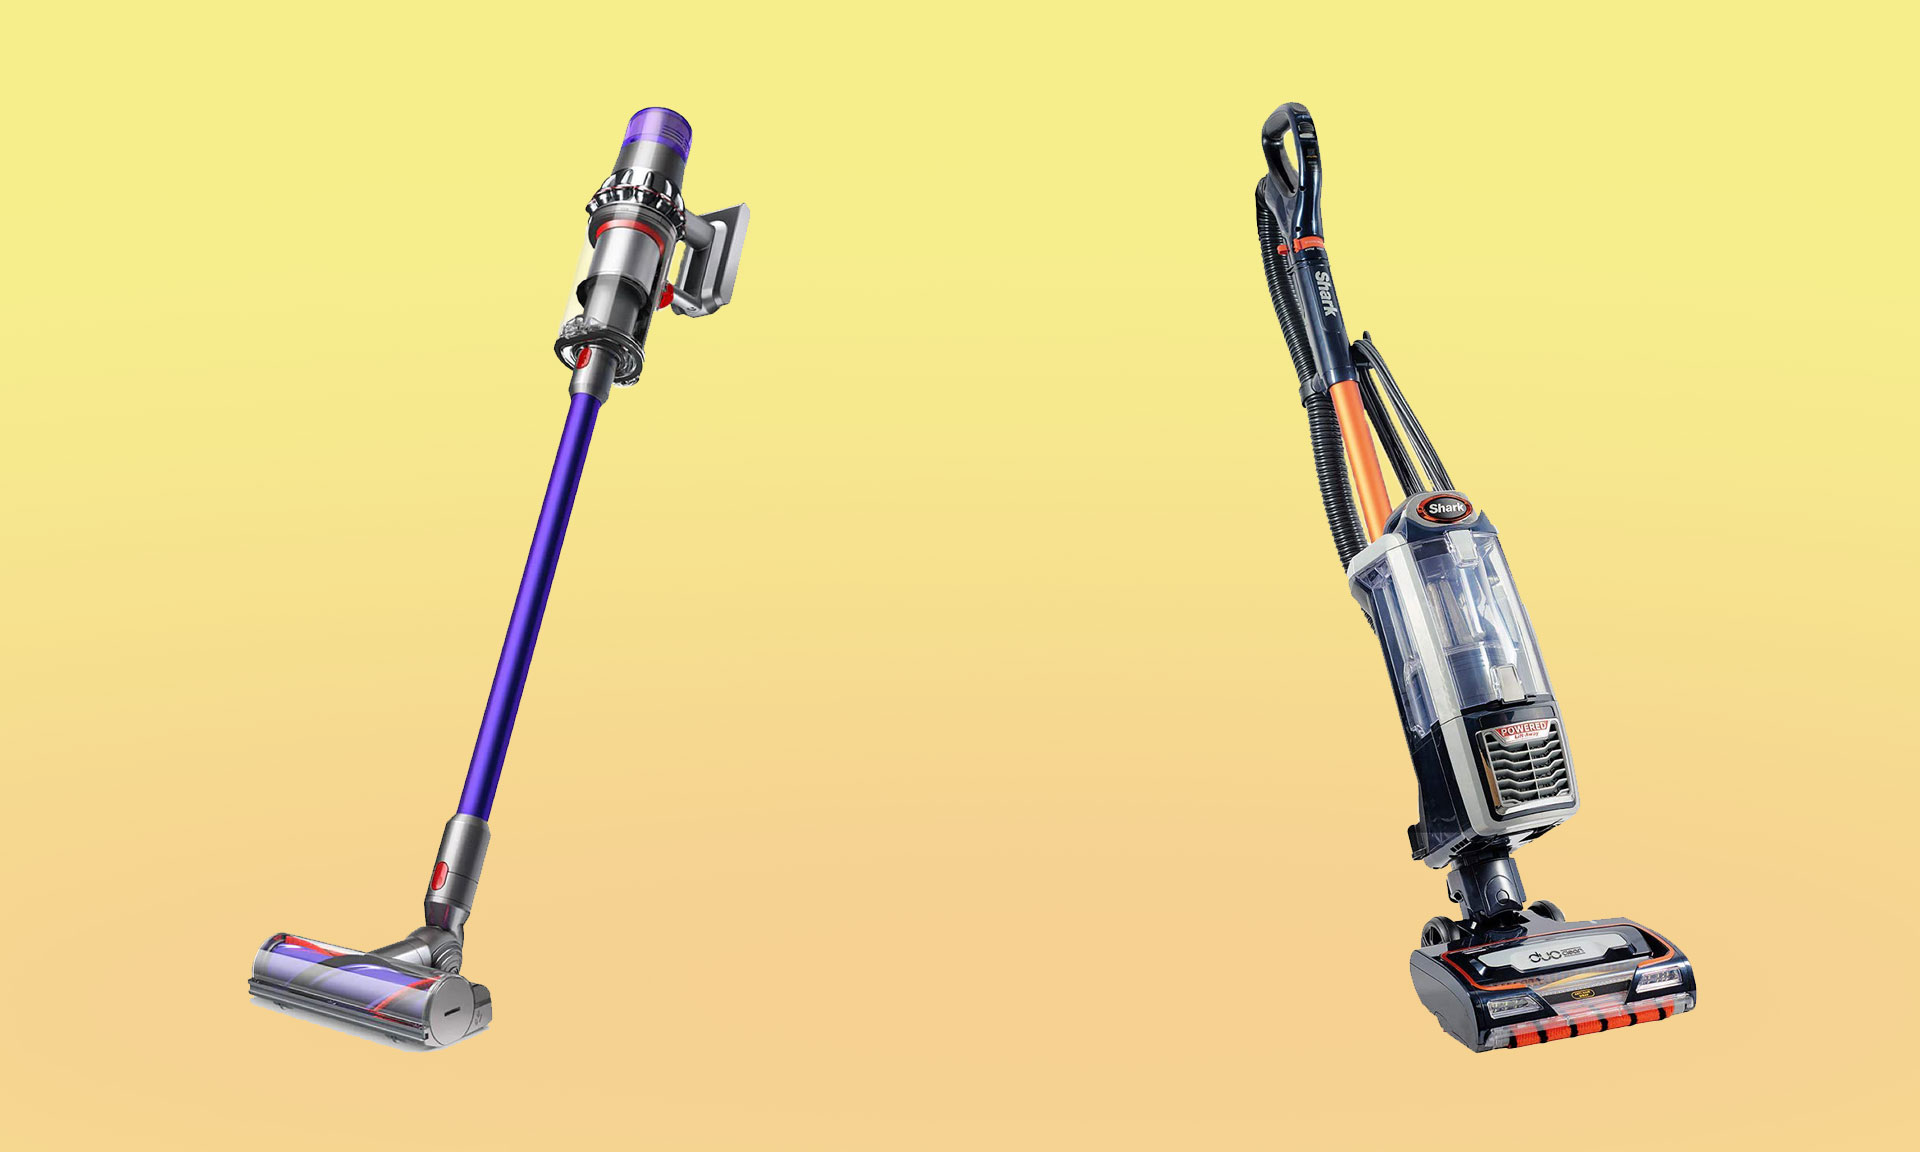 Is the best dyson vacuum cleaner дайсон сушилки дл¤ рук